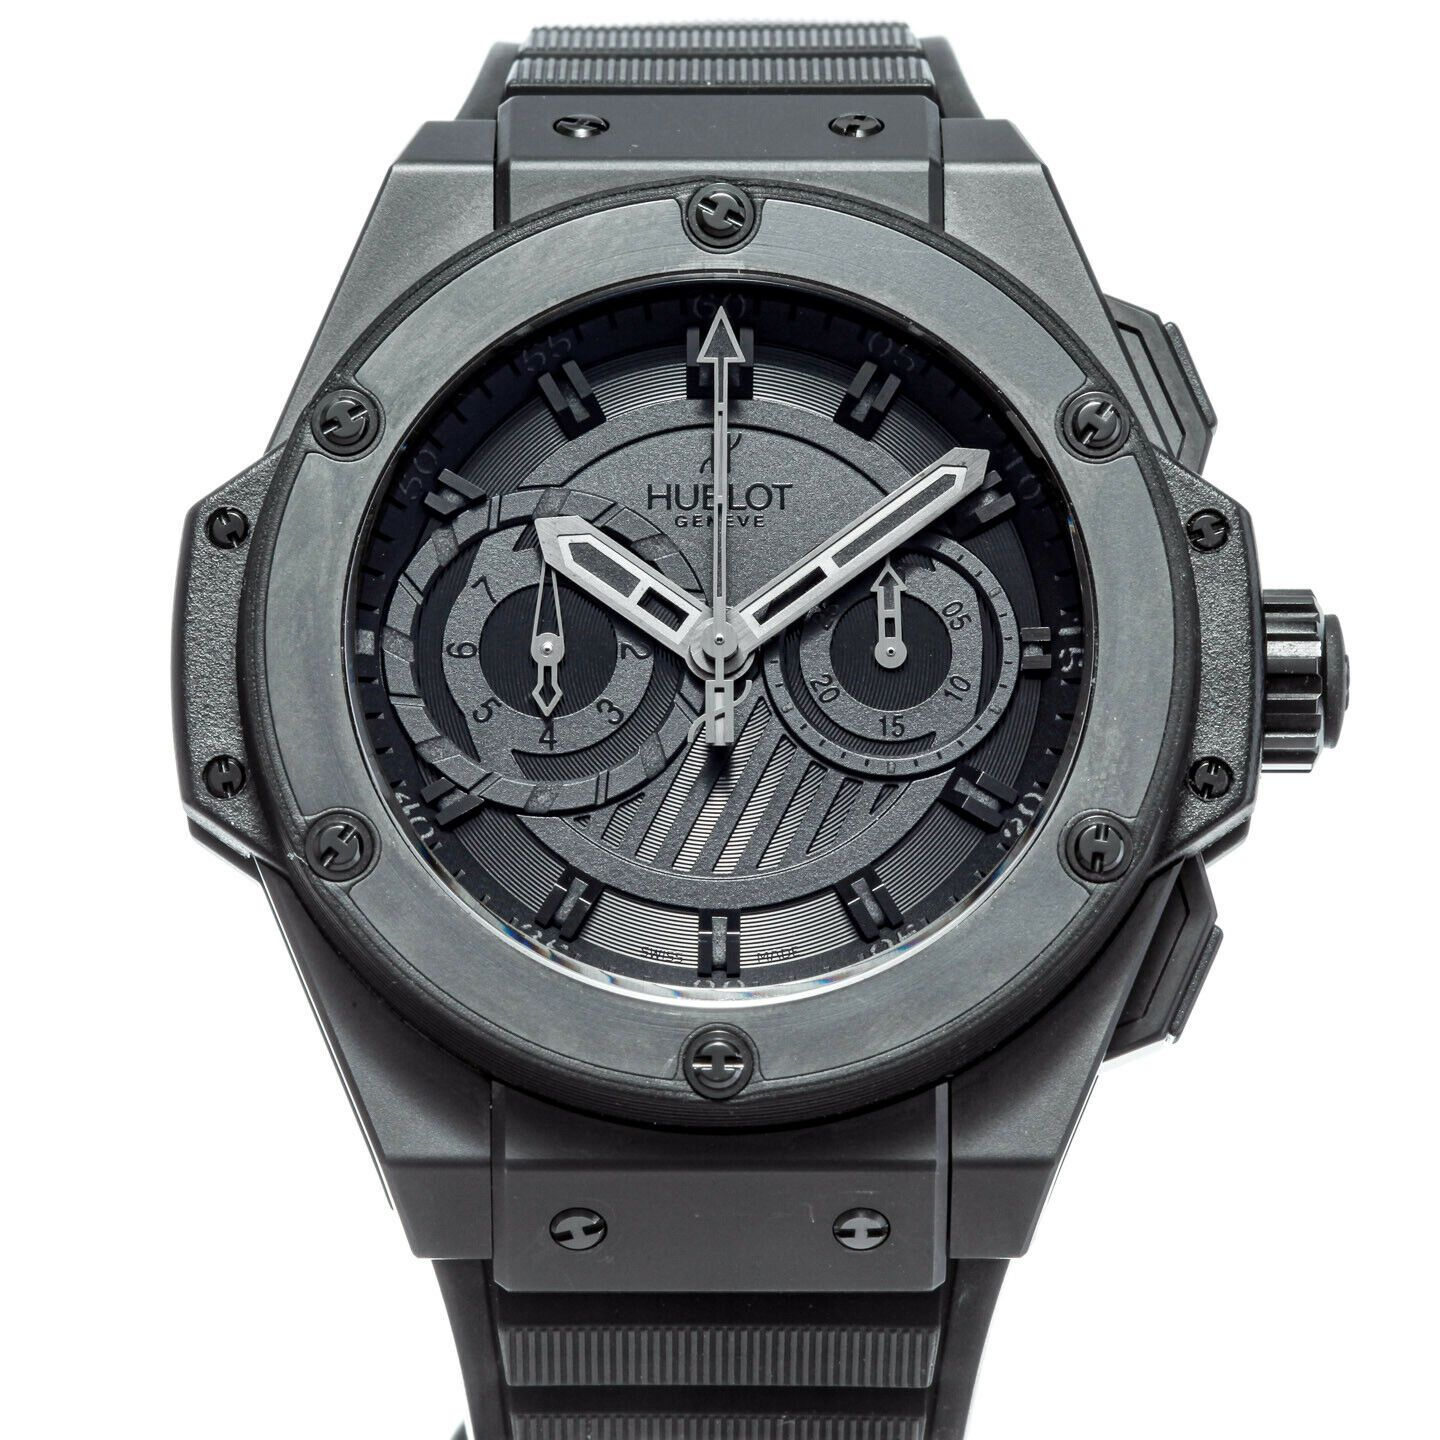 Hublot King Power In 2020 Hublot King Power Hublot Best Watches For Men